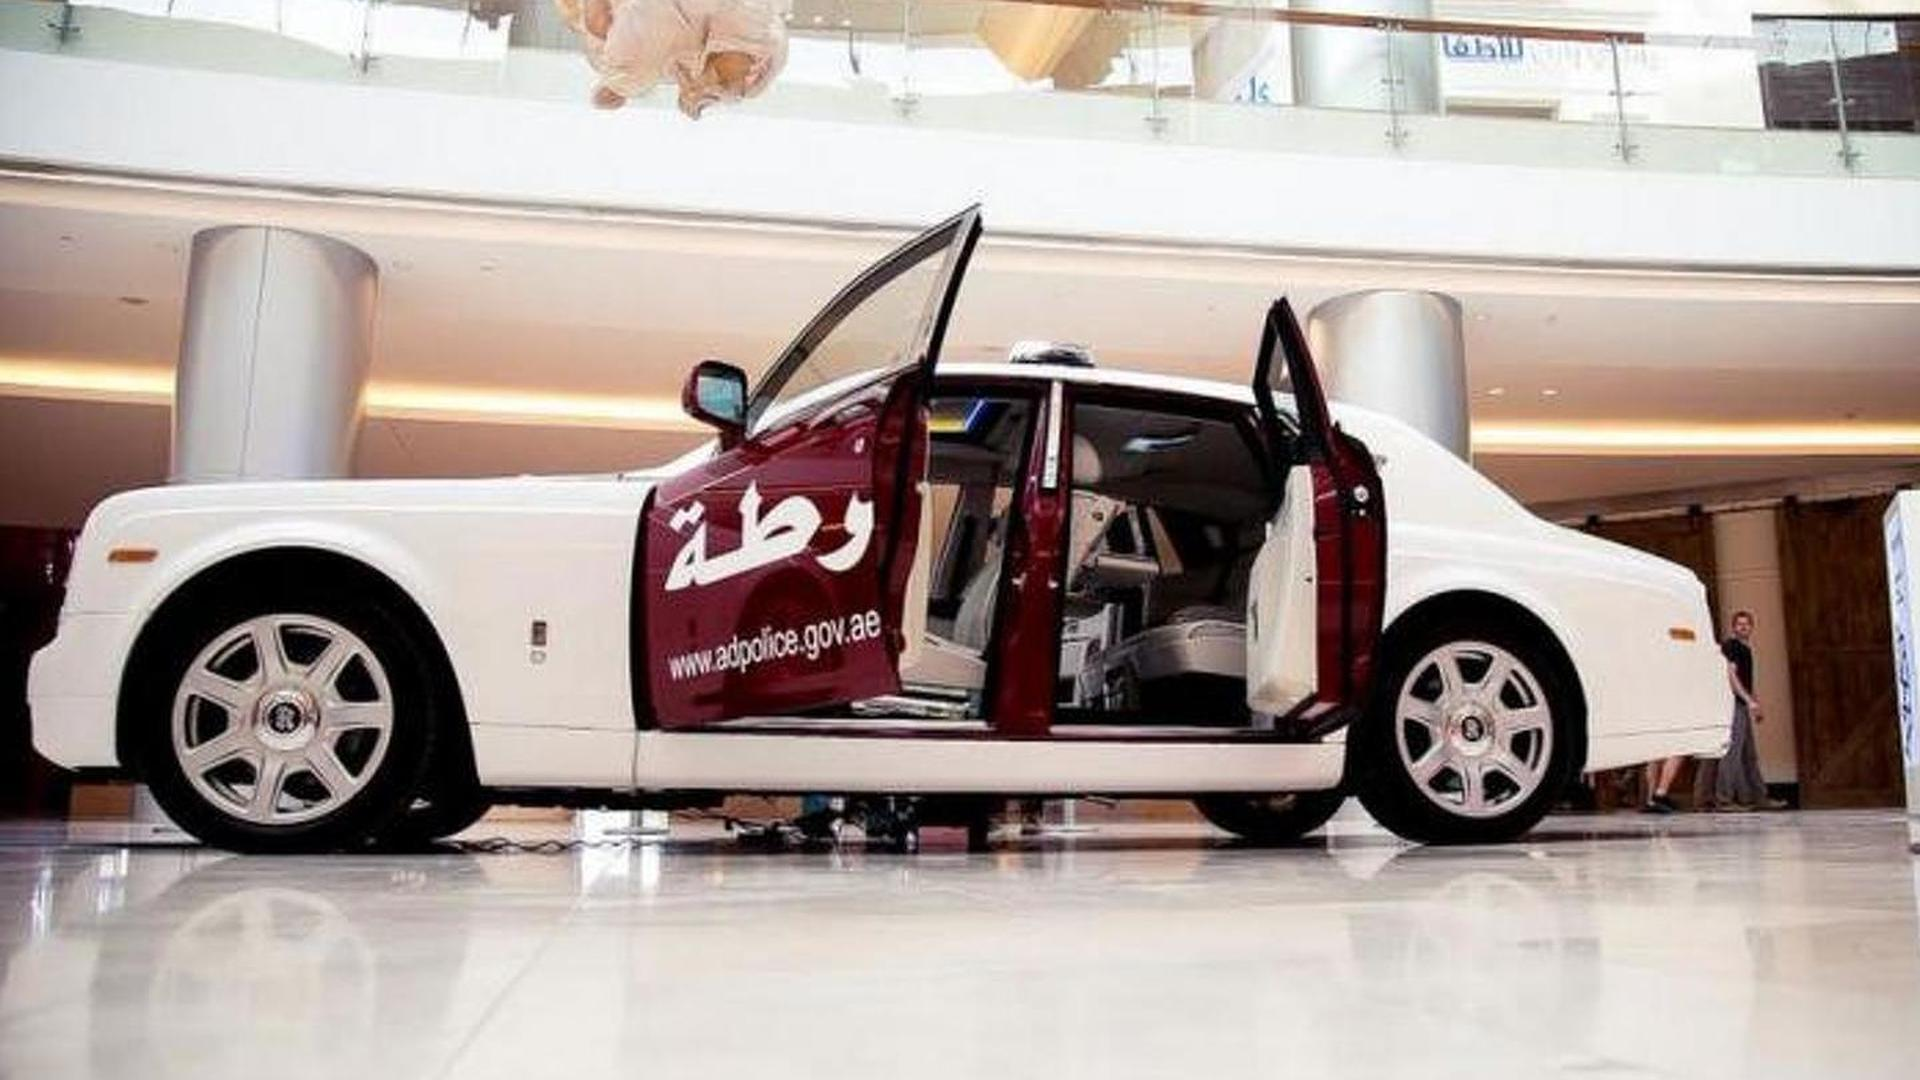 Rolls Royce Phantom Joins Abu Dhabi Police Fleet